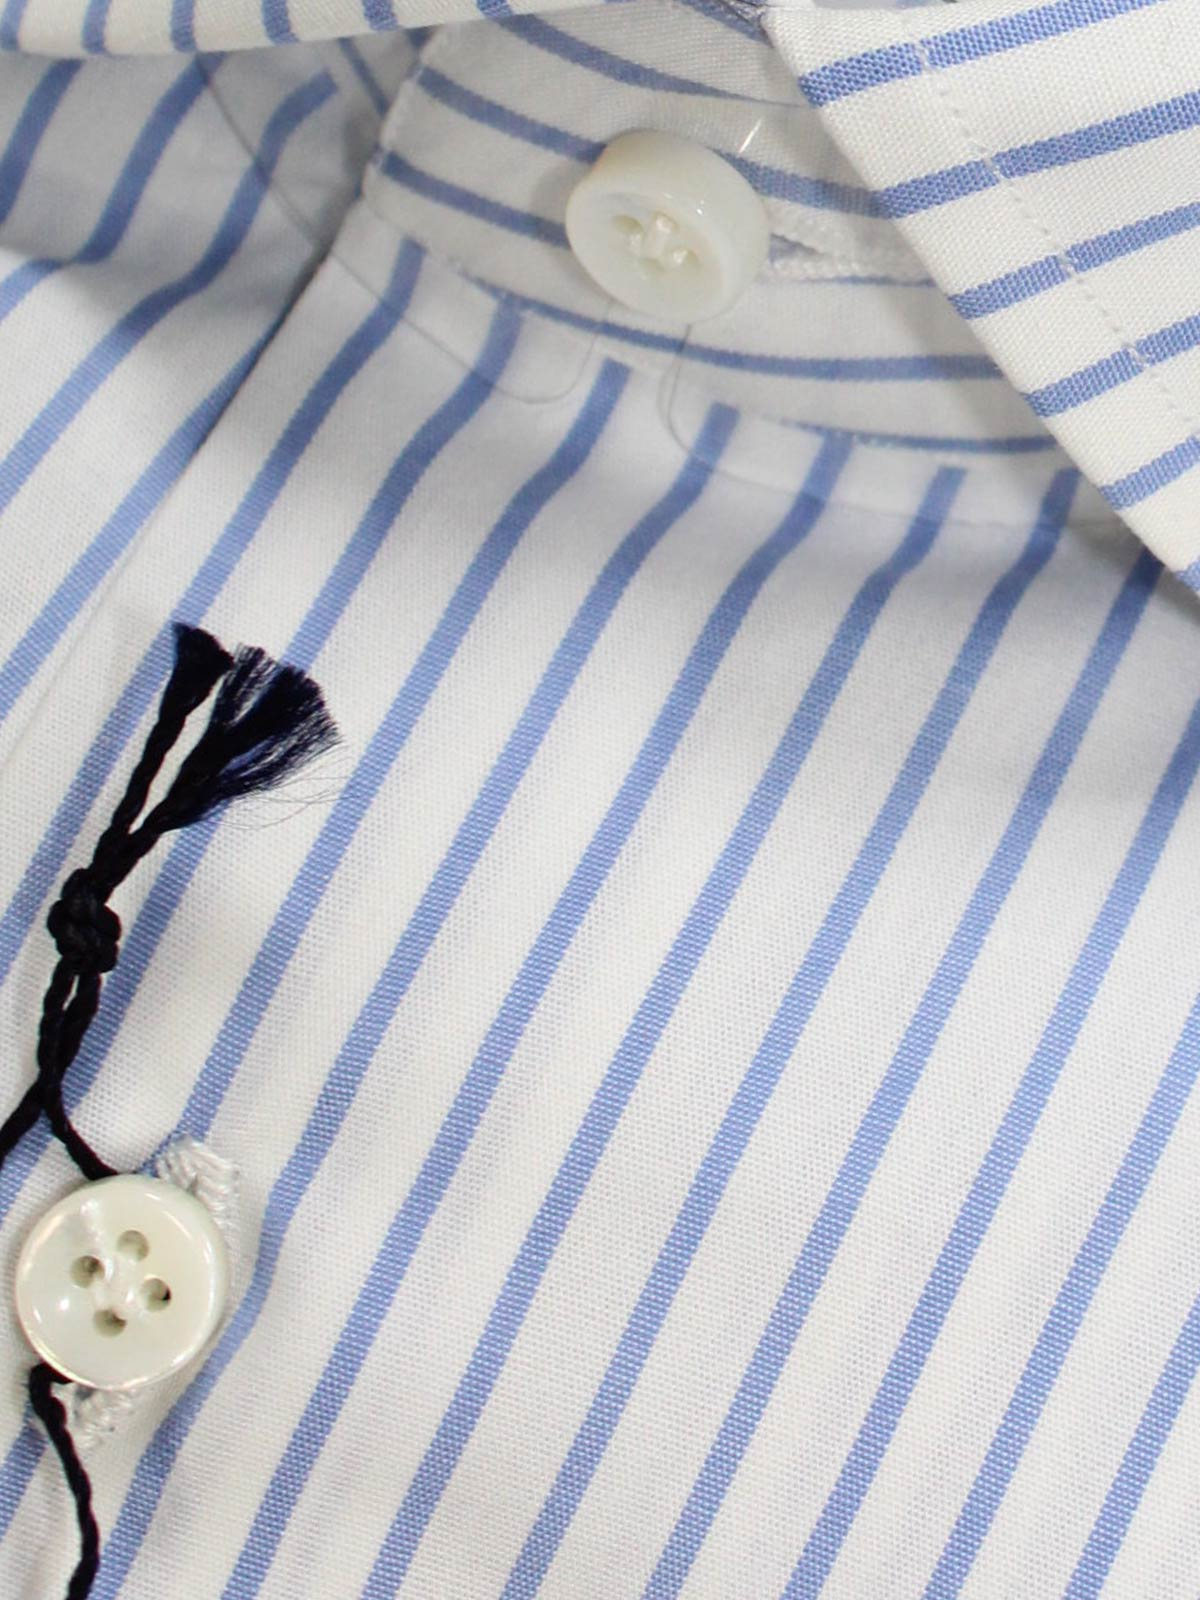 Mattabisch Shirt White Blue Stripes